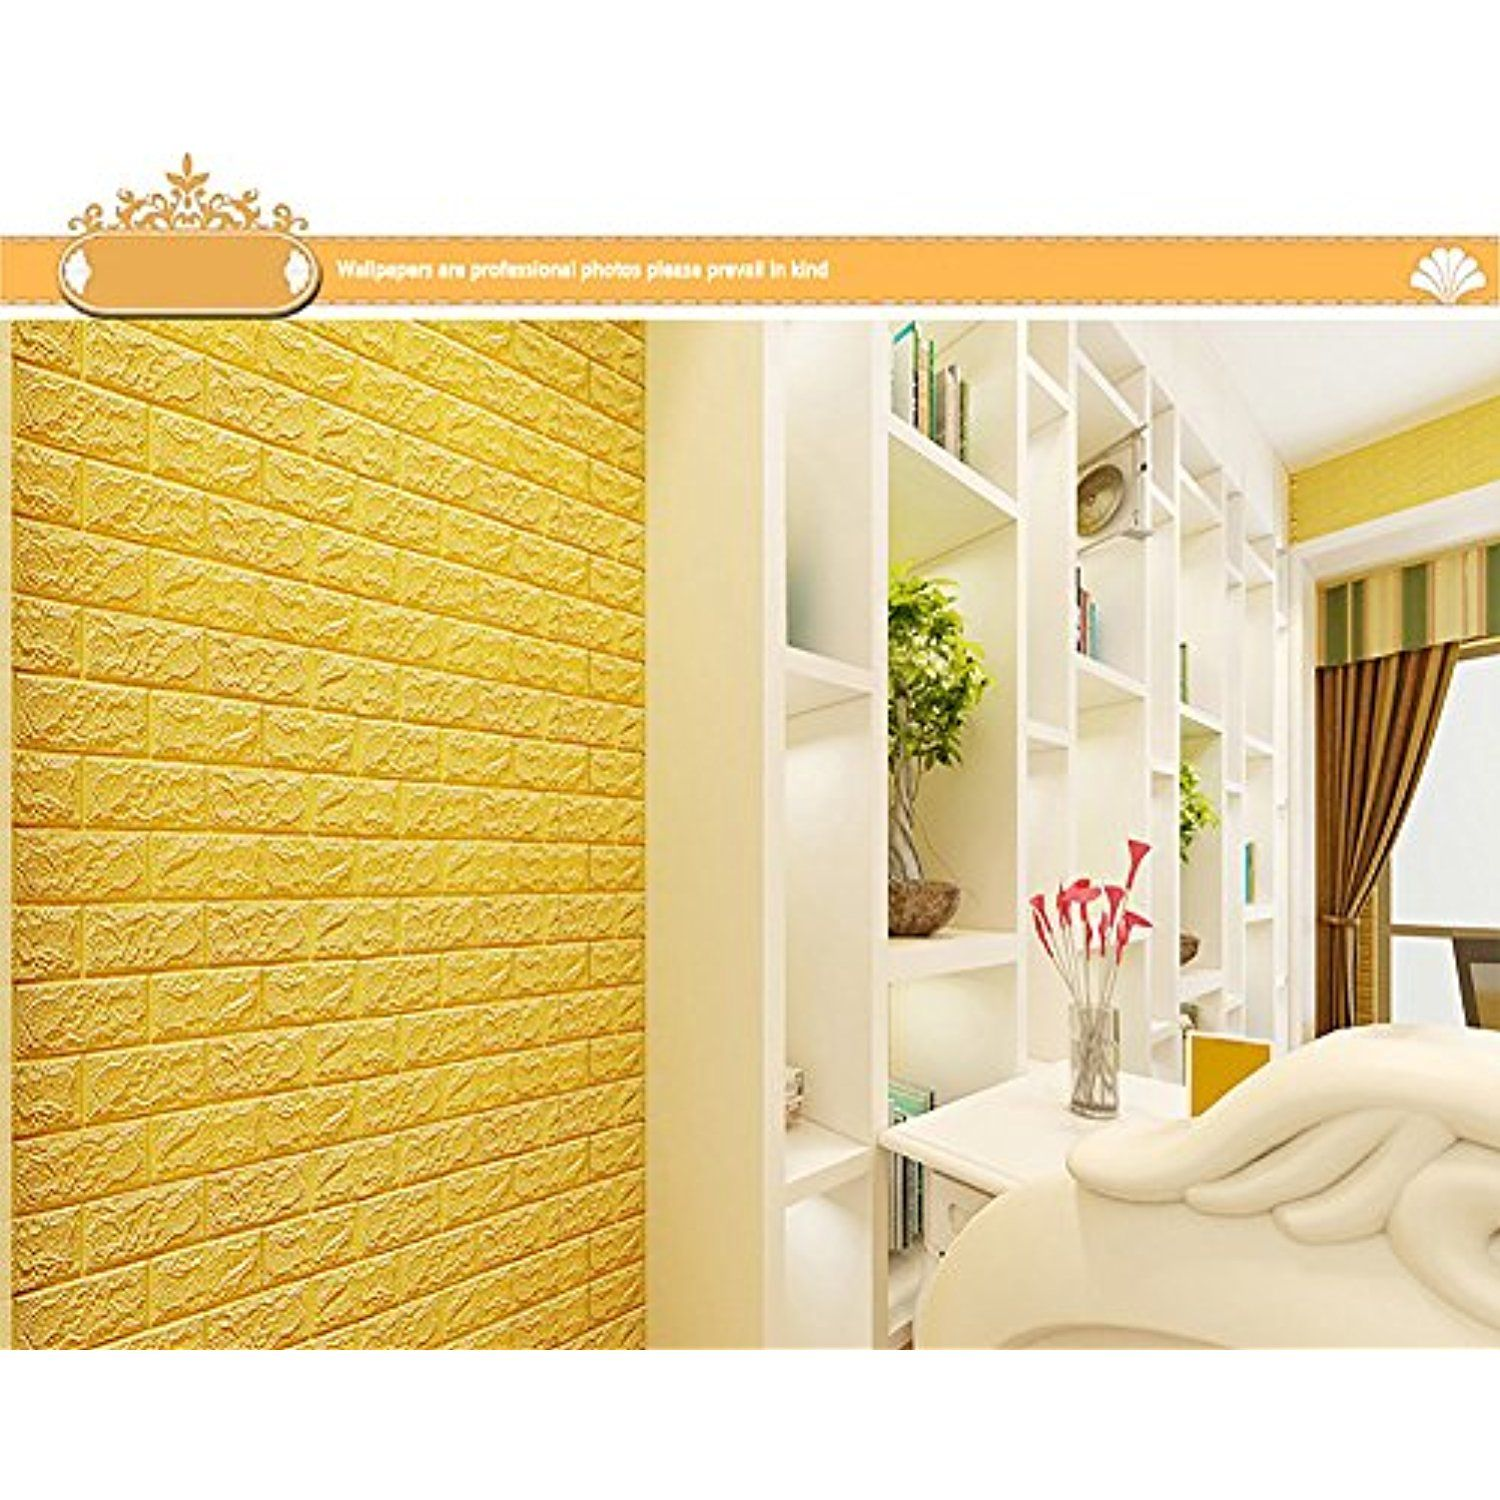 3D Brick Wall Sticker,Sikye Self-Adhesive PE Foam Wallpaper Panels ...